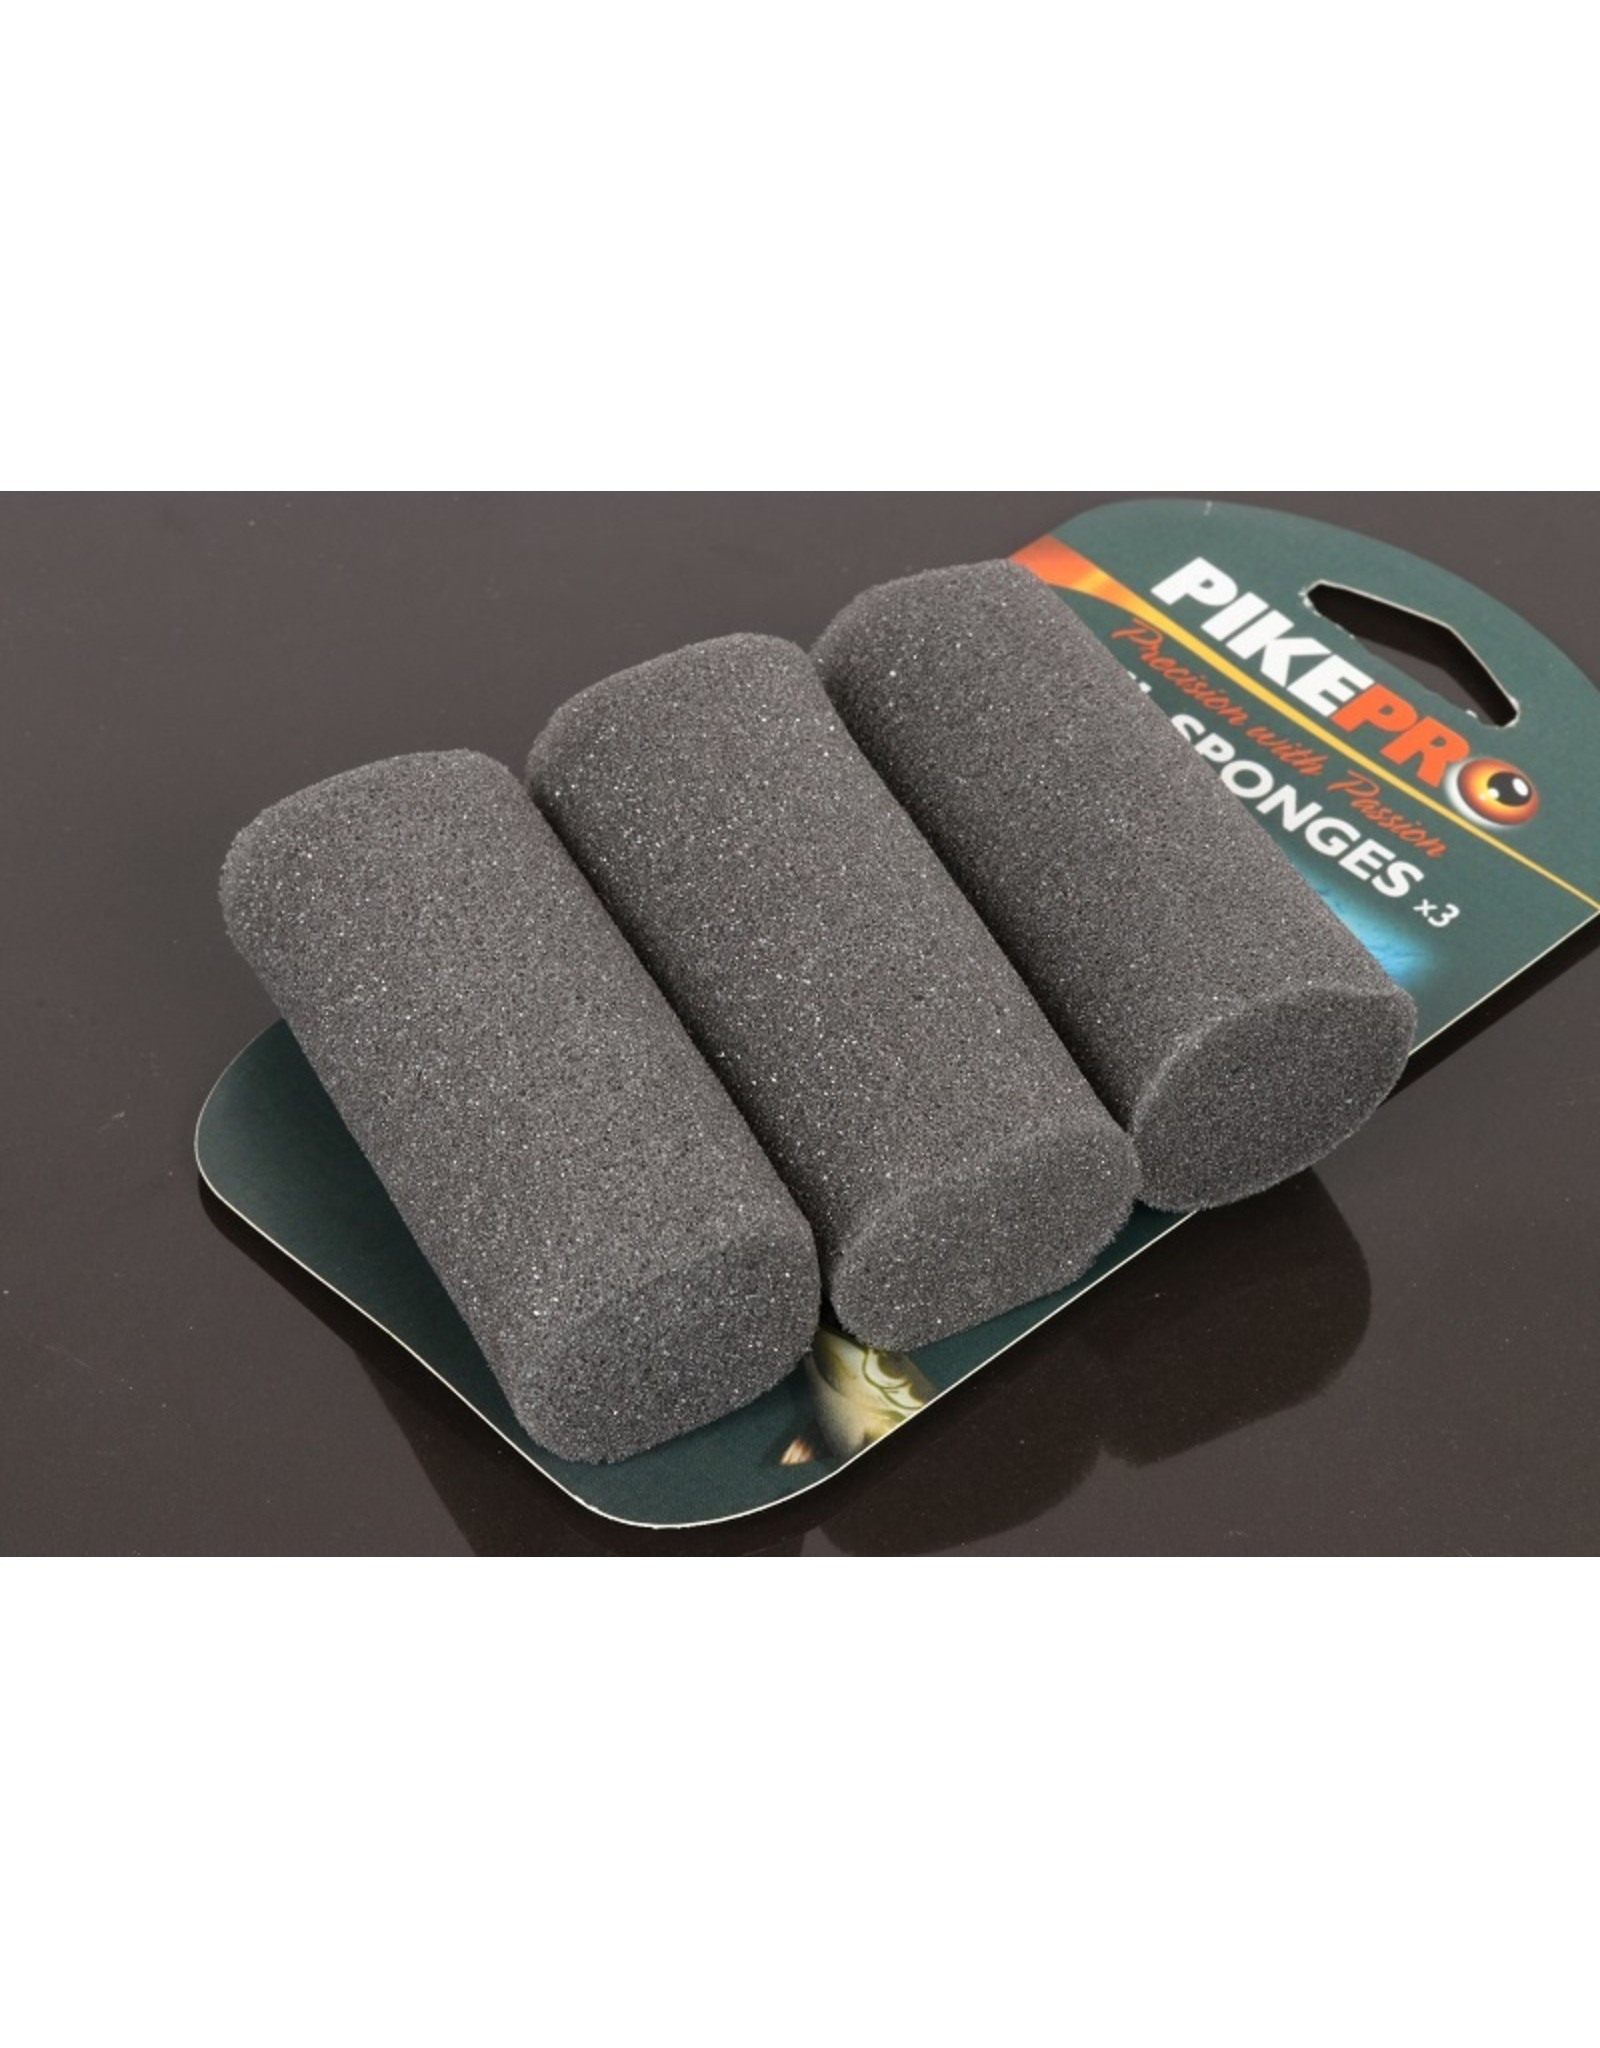 Pike Pro Pike Pro Oil Sponges